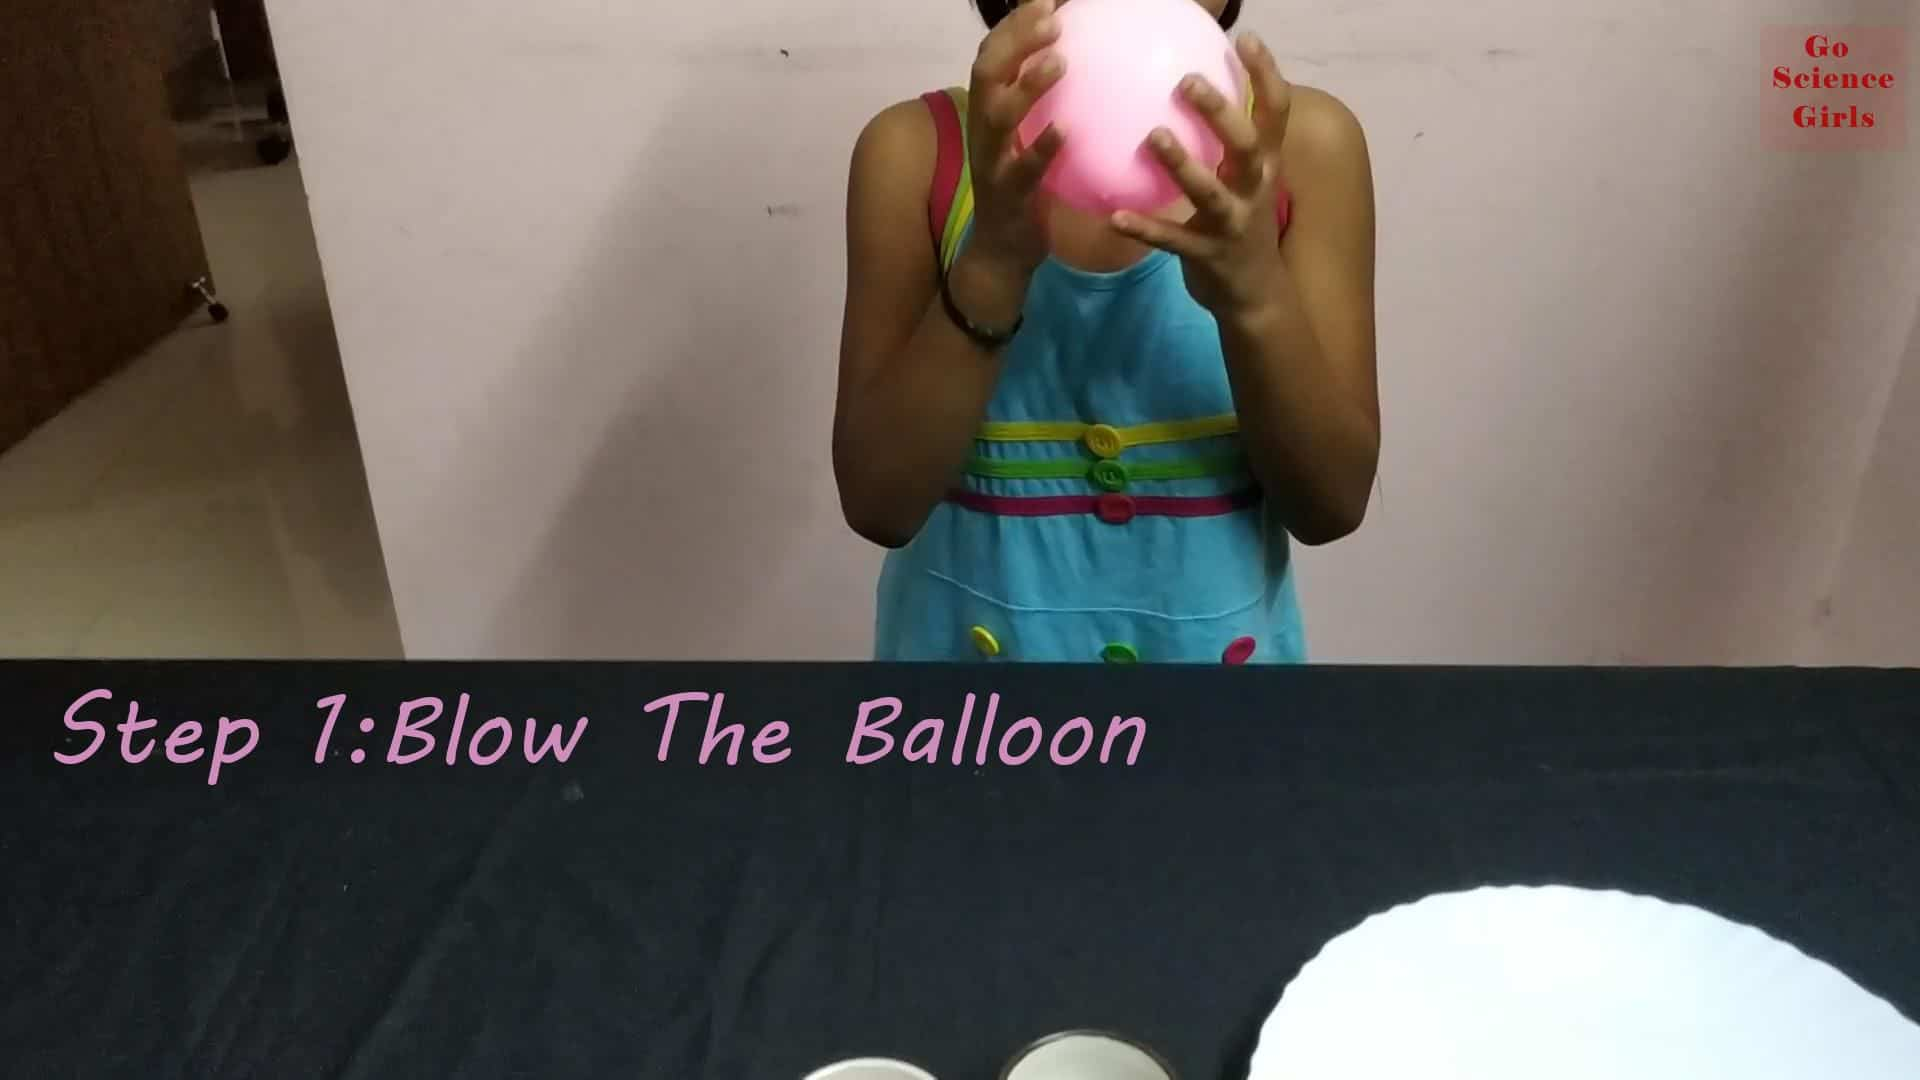 Blow the balloon static science experiment